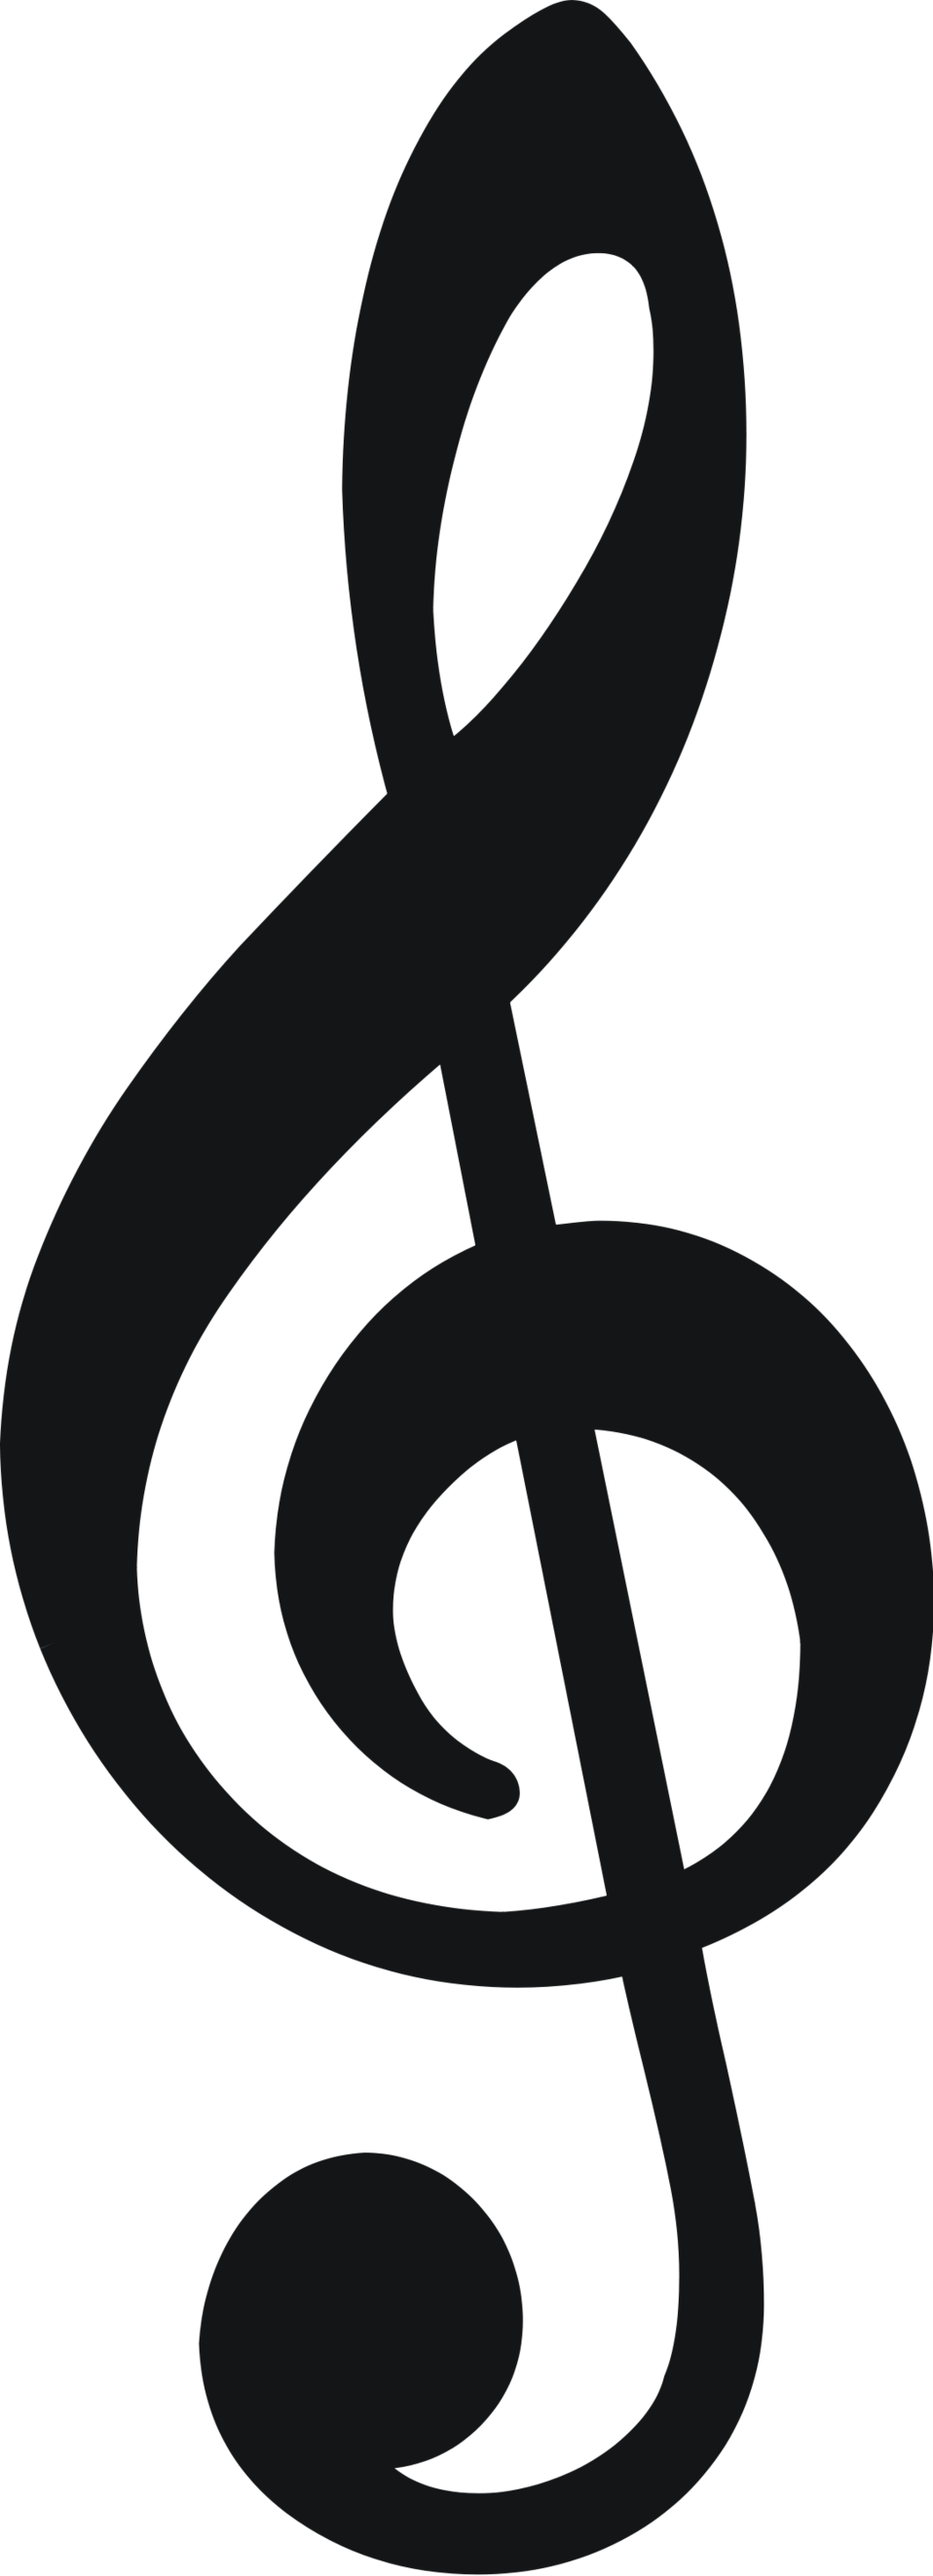 Free Picture Of Treble Clef, Download Free Clip Art, Free.